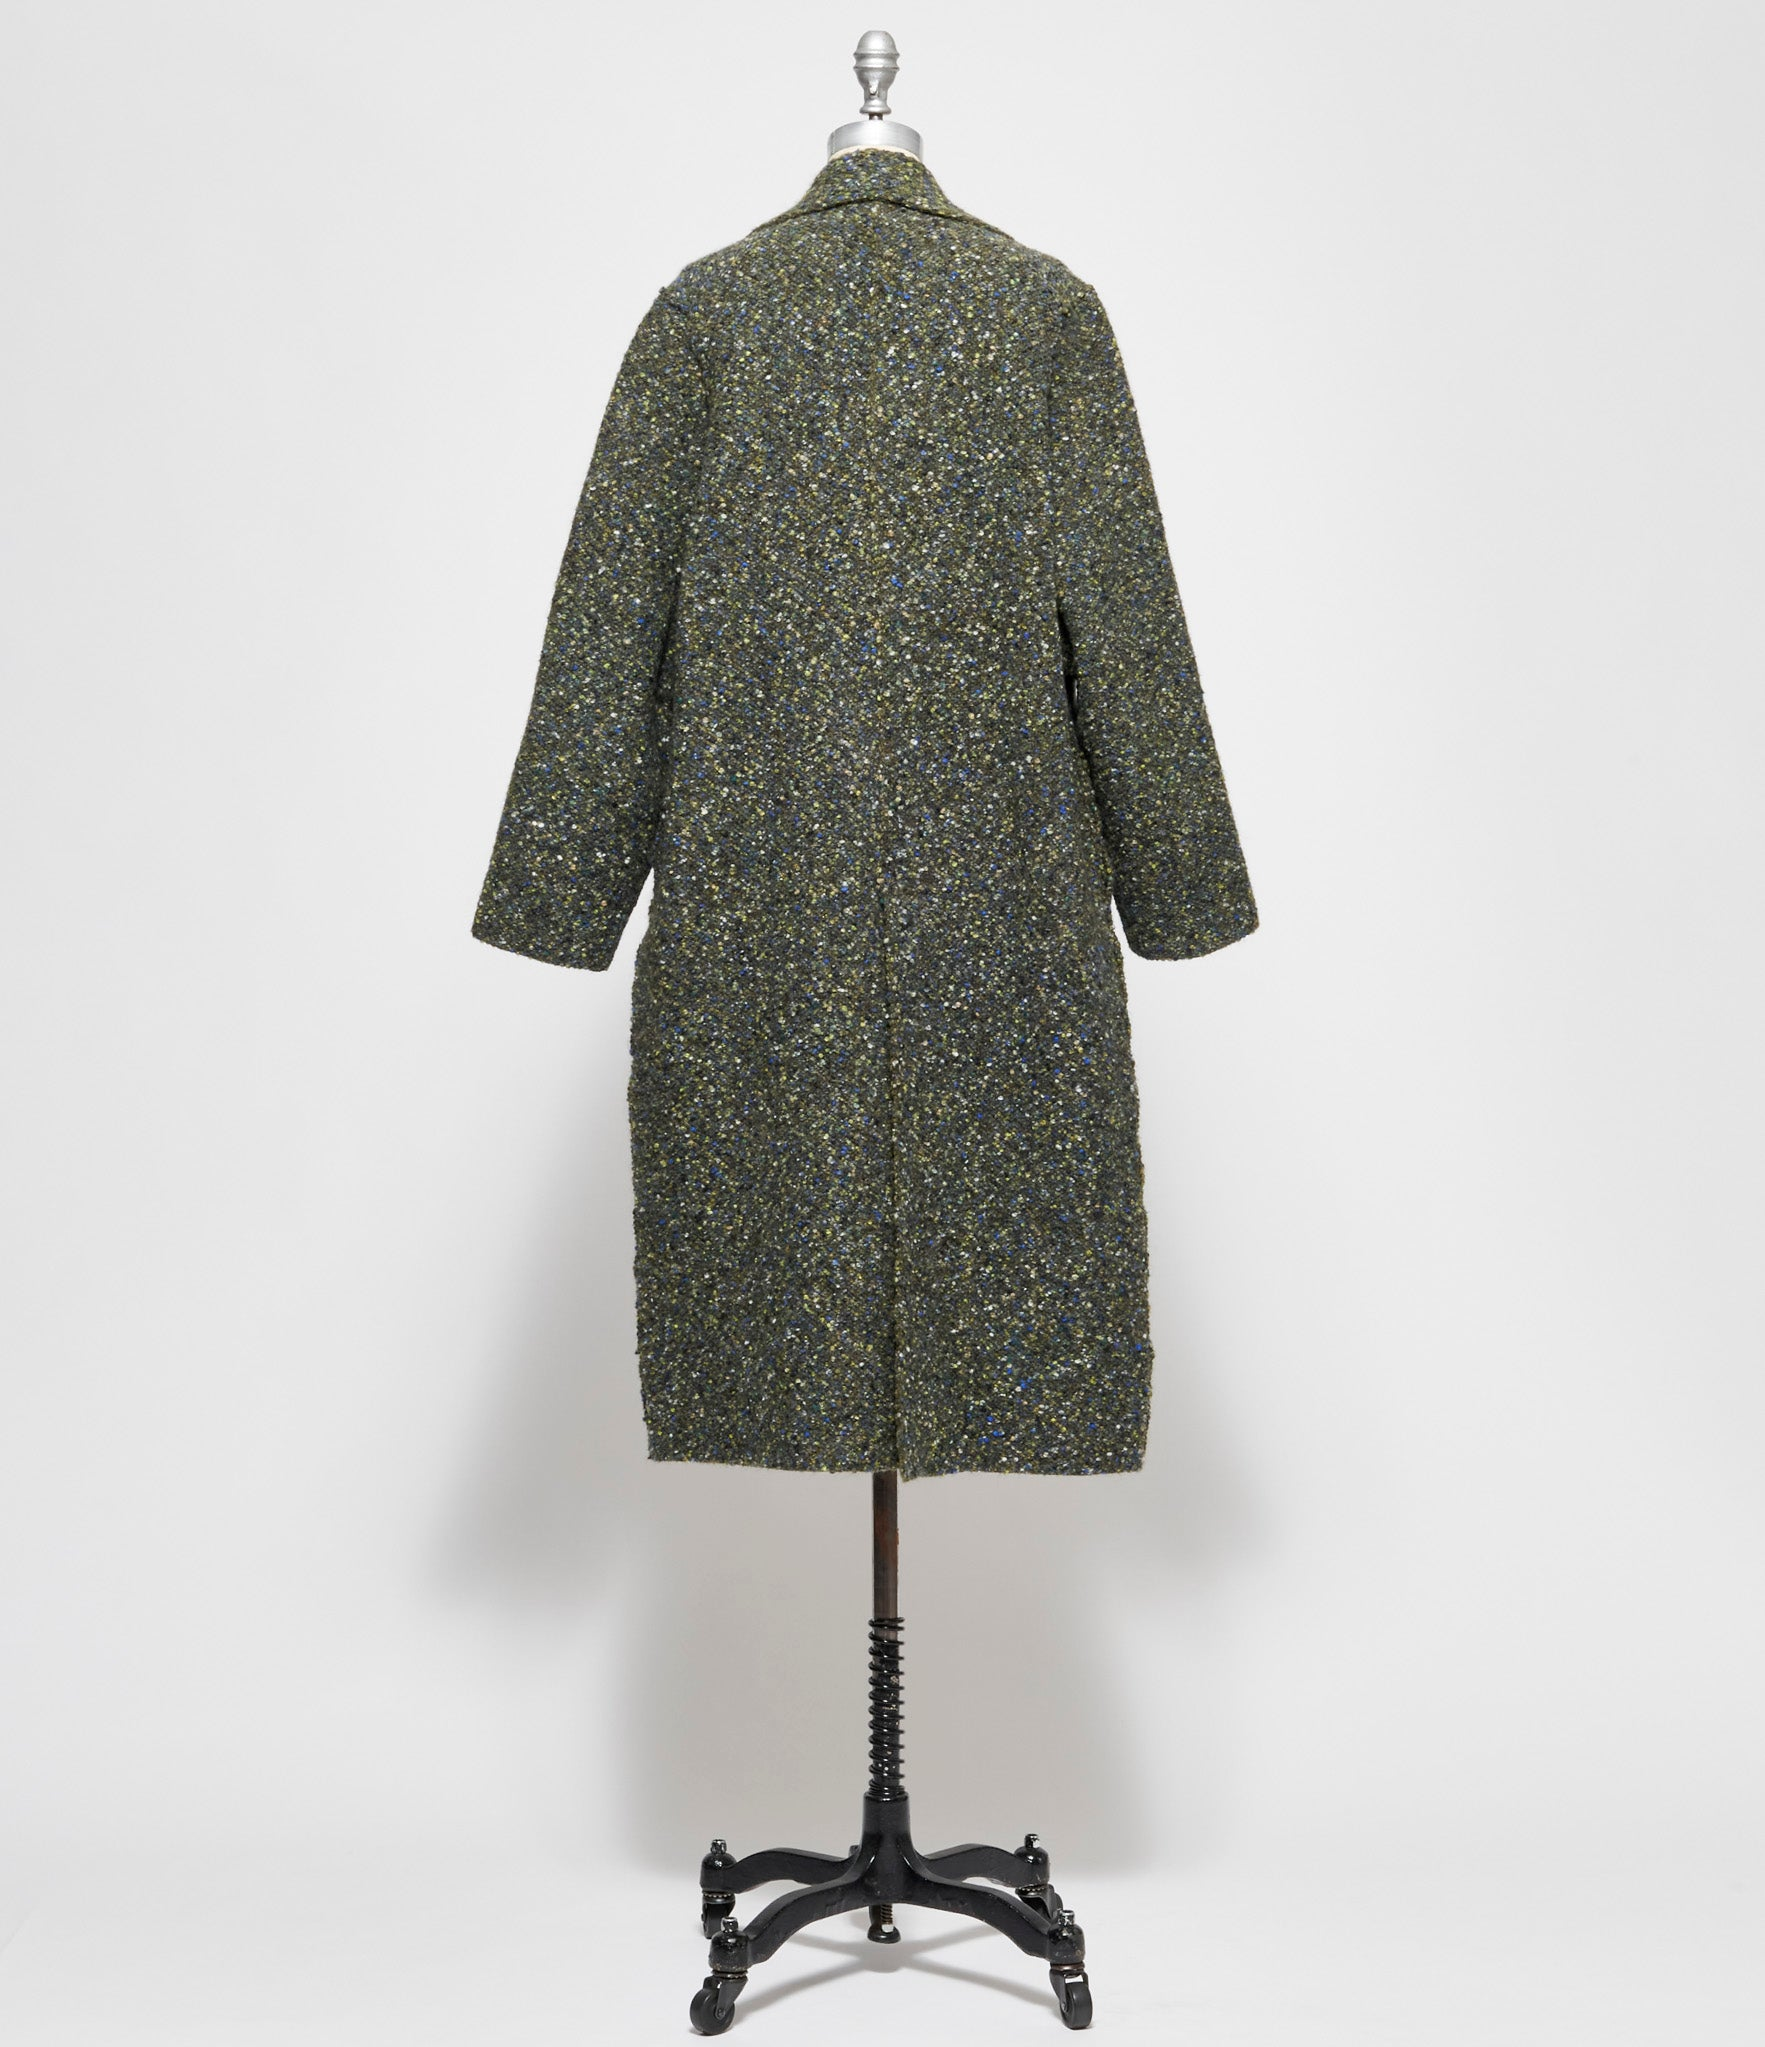 Boboutic Frottage Coat